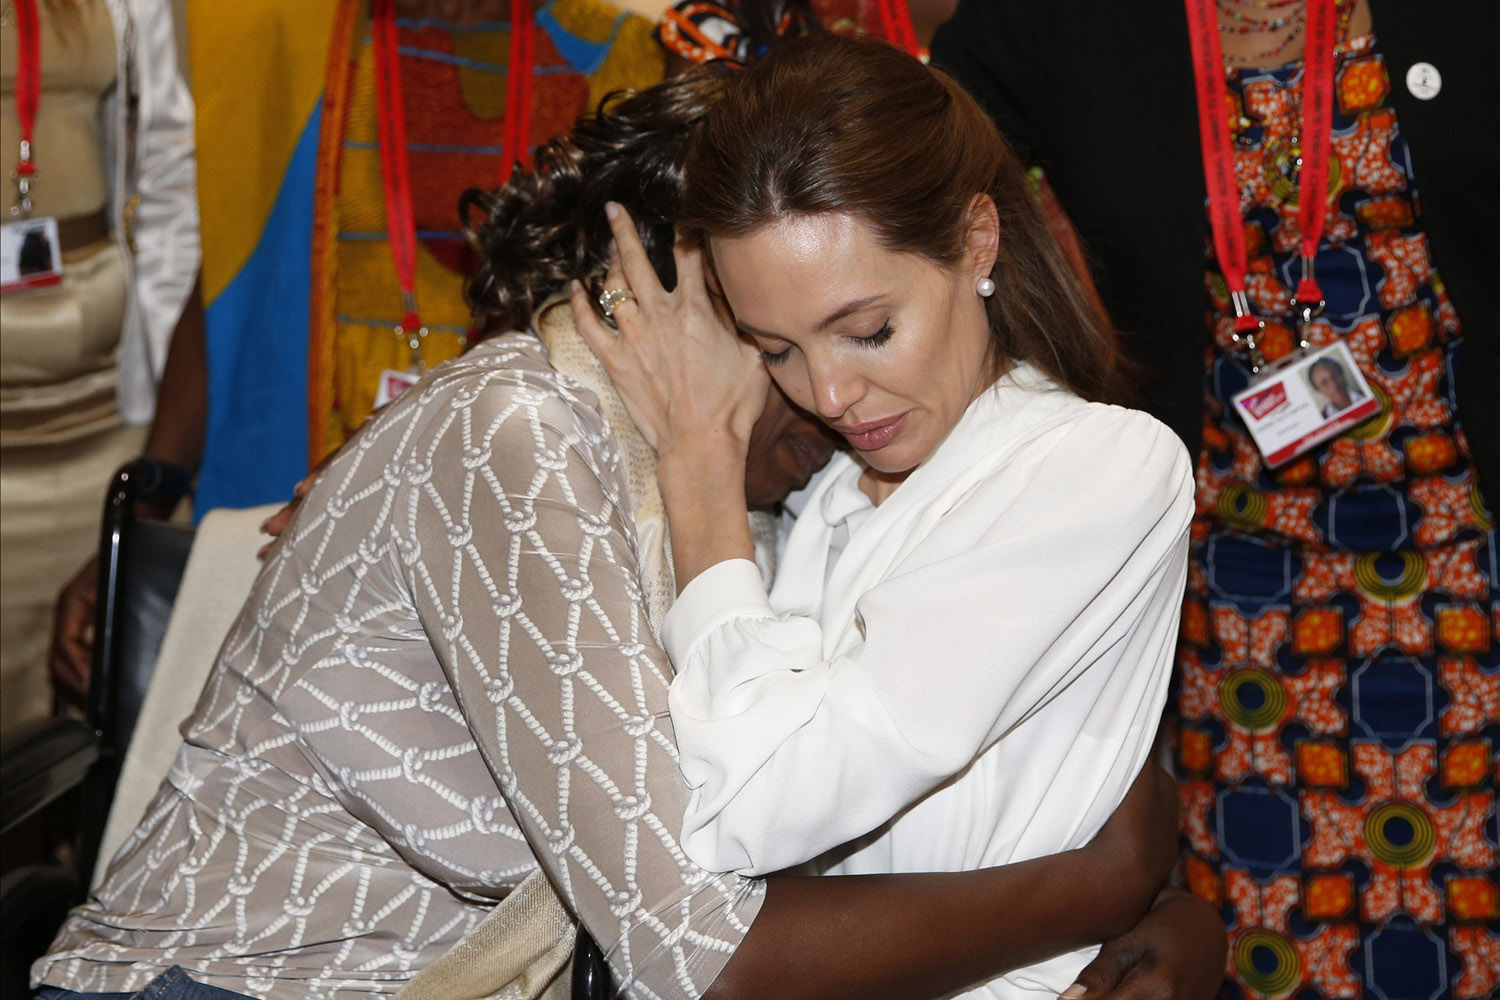 Jun. 11, 2014. Actress and Special Envoy of the United Nations High Commissioner for Refugees, Angelina Jolie, hugs Neema Namadamu of the Democratic Republic of Congo a the 'End Sexual Violence in Conflict' summit in London.